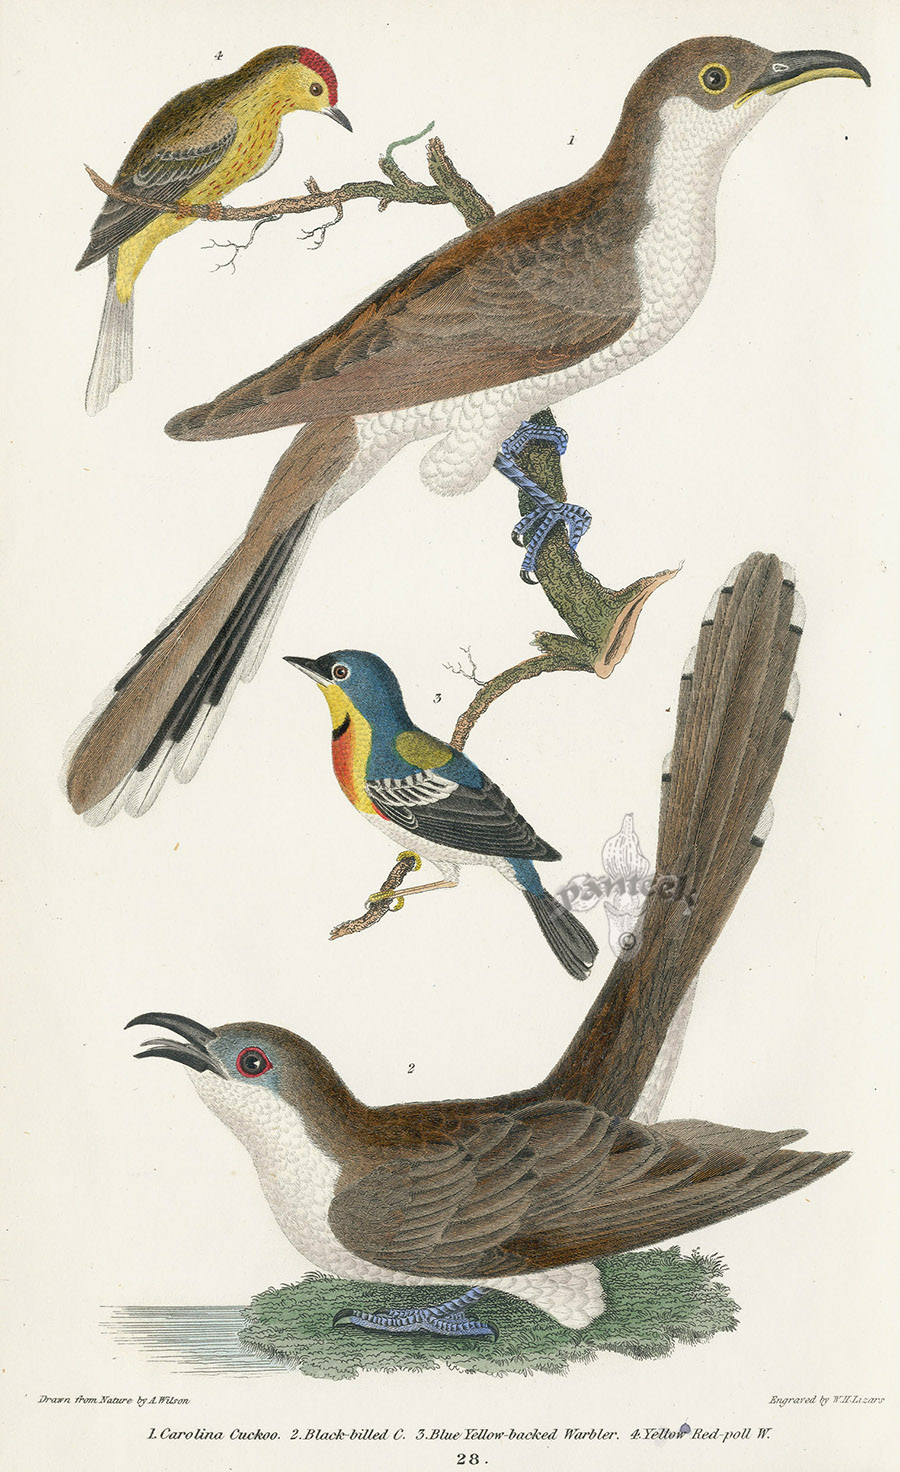 Carolina Cuckoo Black Billed Blue Yellow Backed Warbler Red Poll From Lithographs Of American Birds